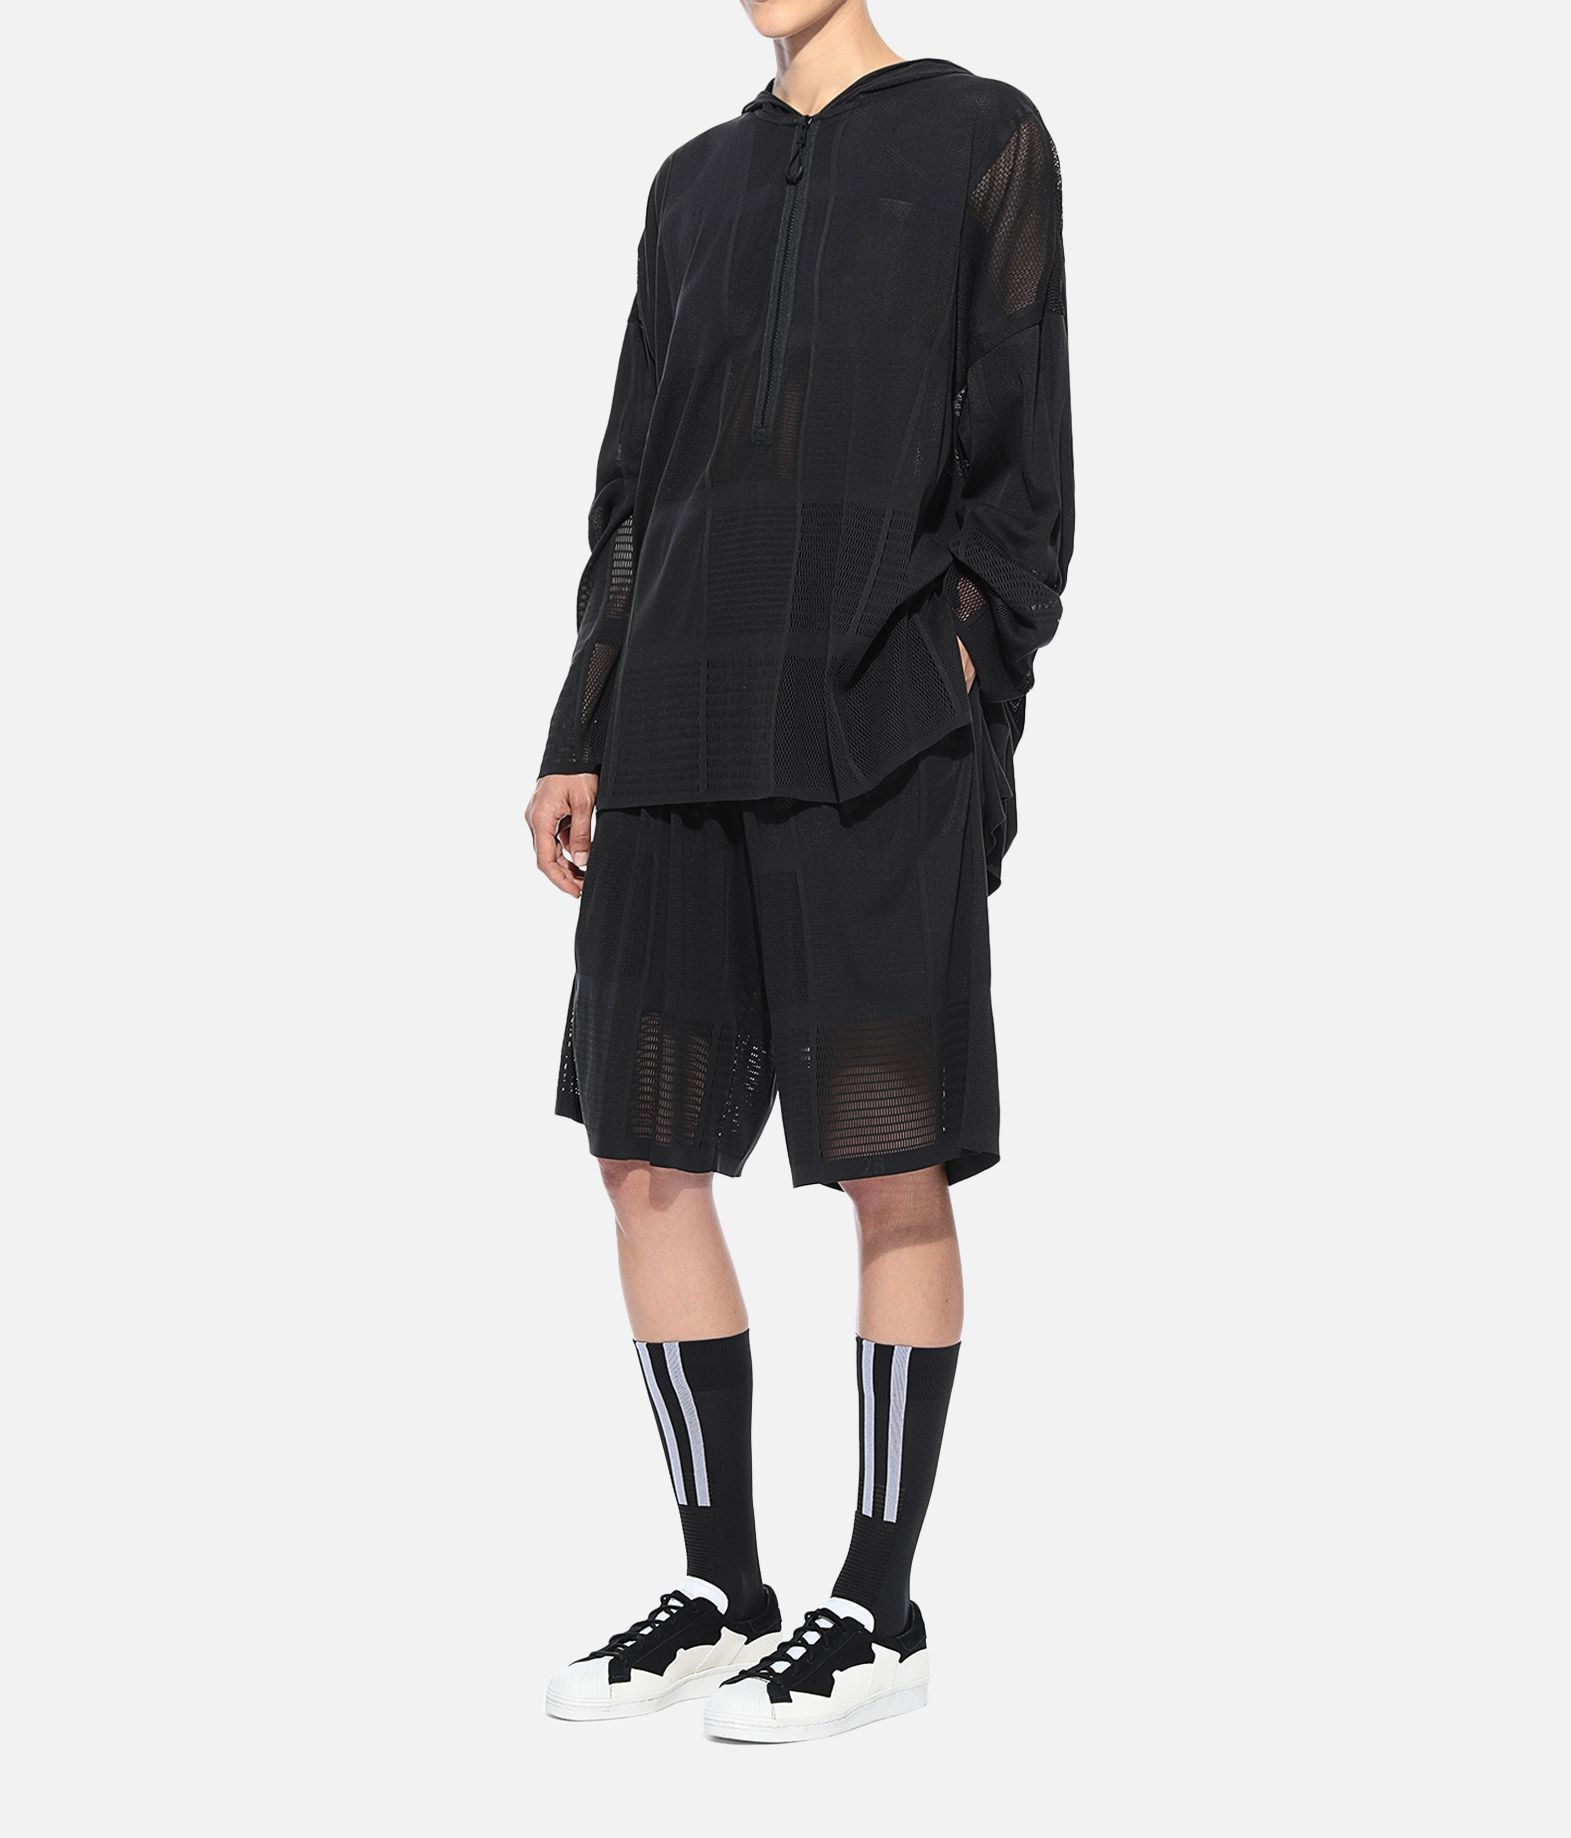 Y-3 Y-3 Patchwork Hoodie フード付きトレーナー レディース a